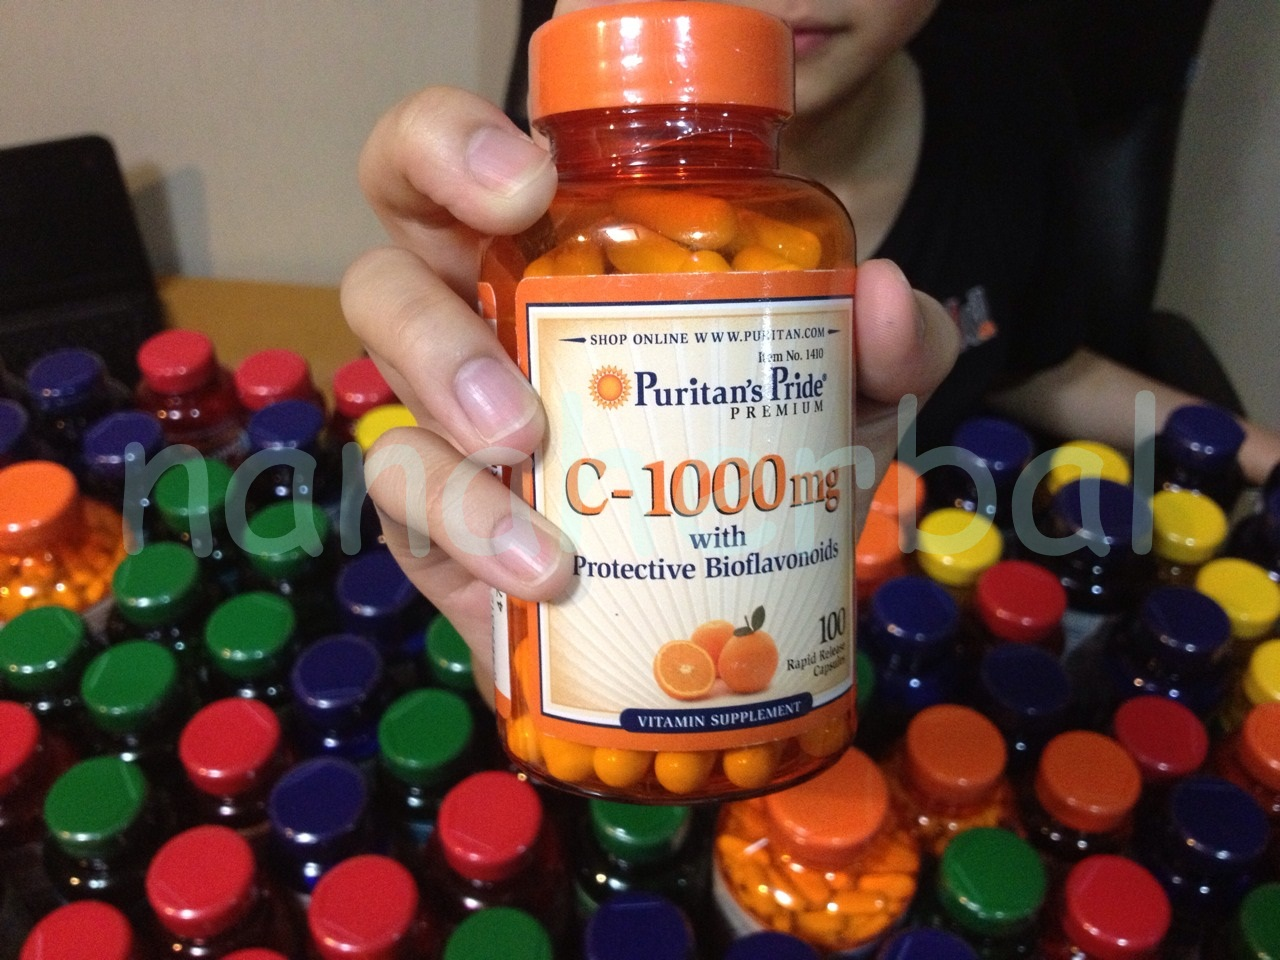 c-1000 mg with protective bioflavonoids 100 rapid release capsules